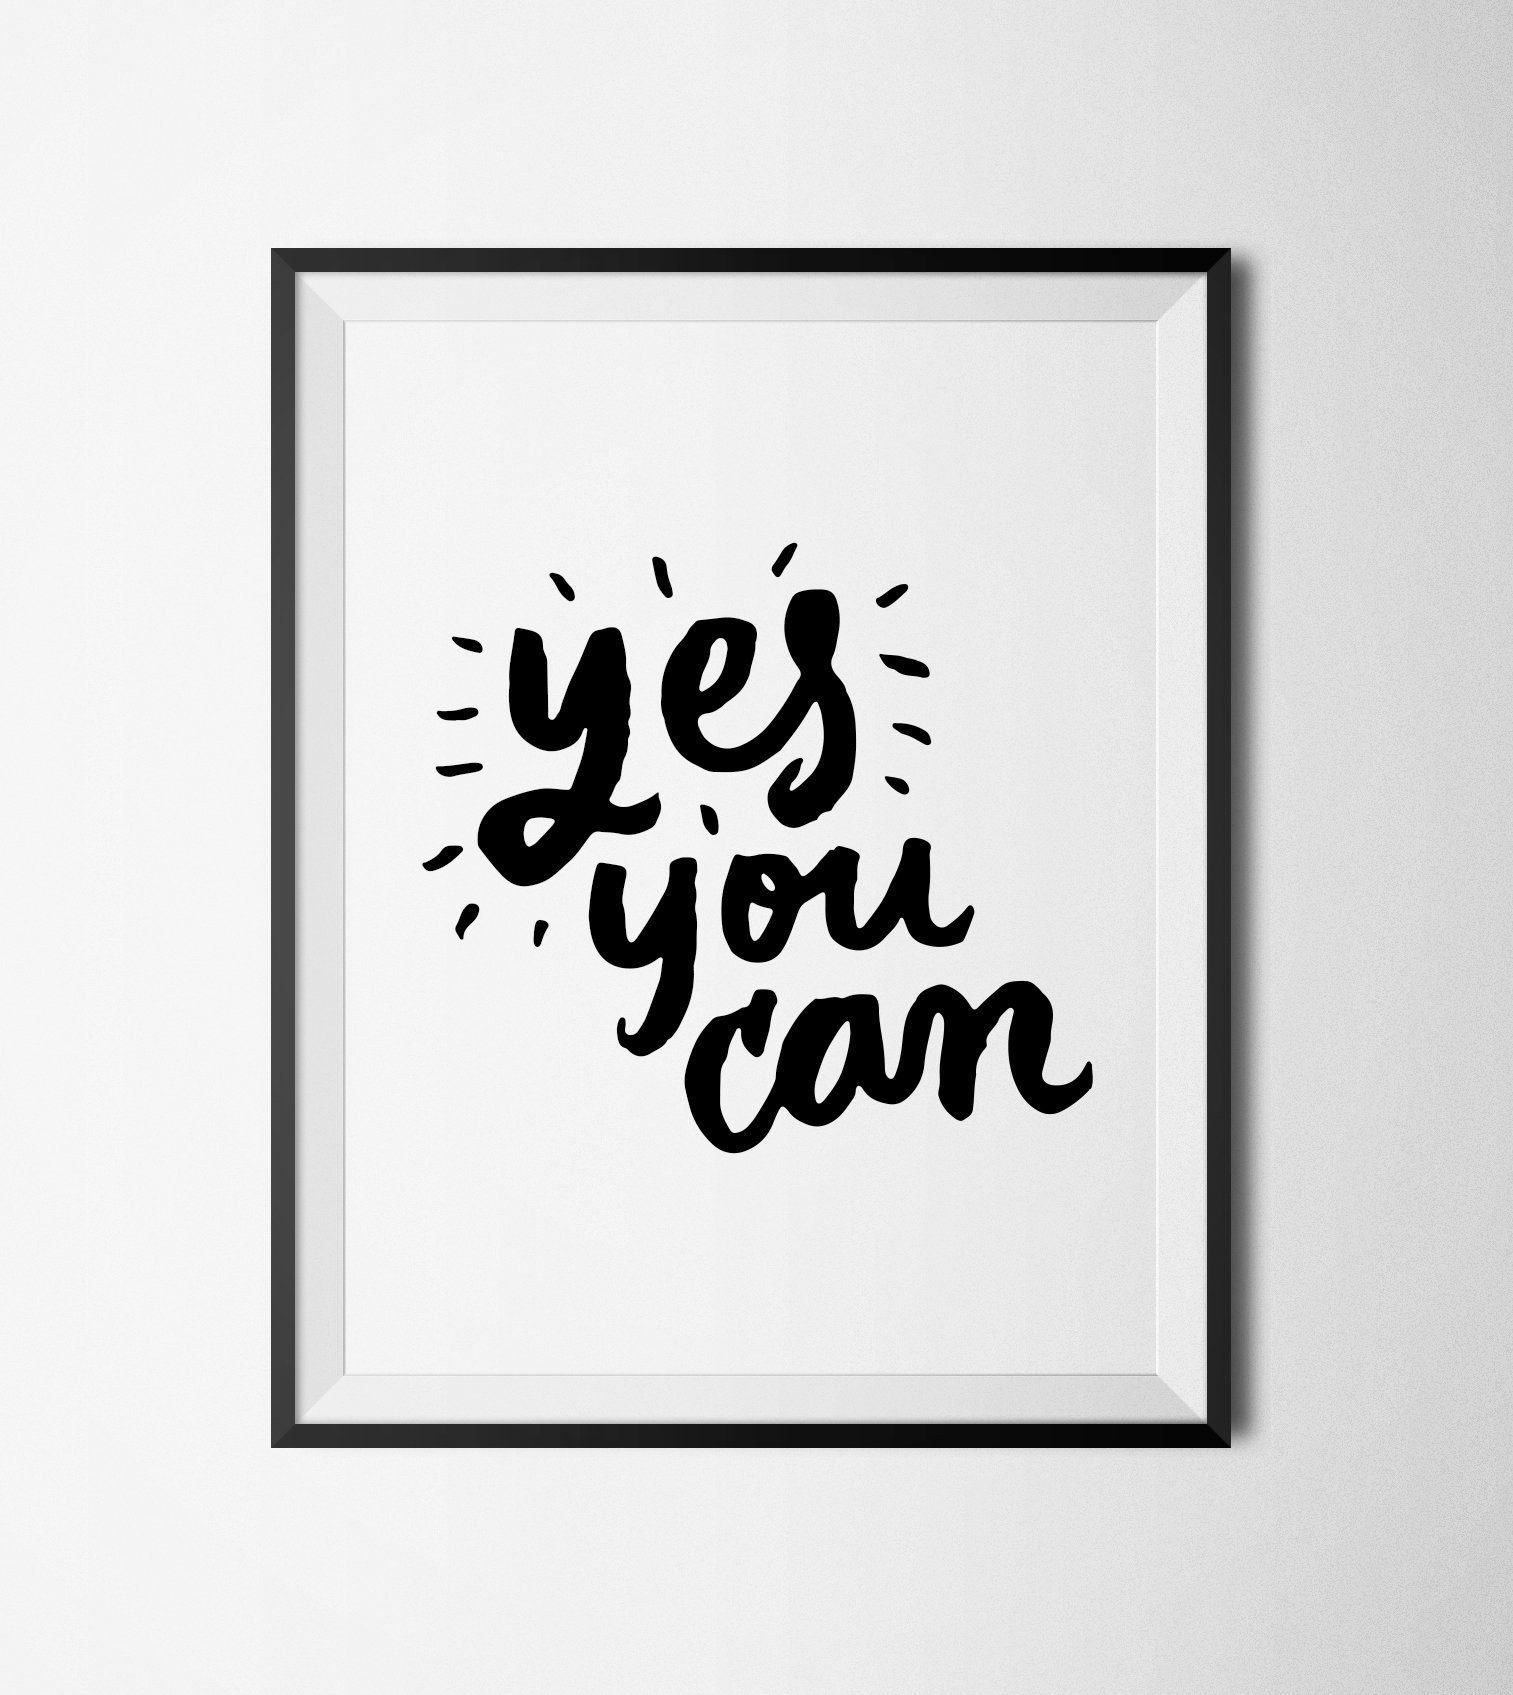 image about Printable Posters known as Motivational Poster, Indeed Oneself Can Printable Estimate, Typography Wall Artwork, Printable Artwork, Typography Print, Quotation Posters offered by way of Generate A Wake Studio